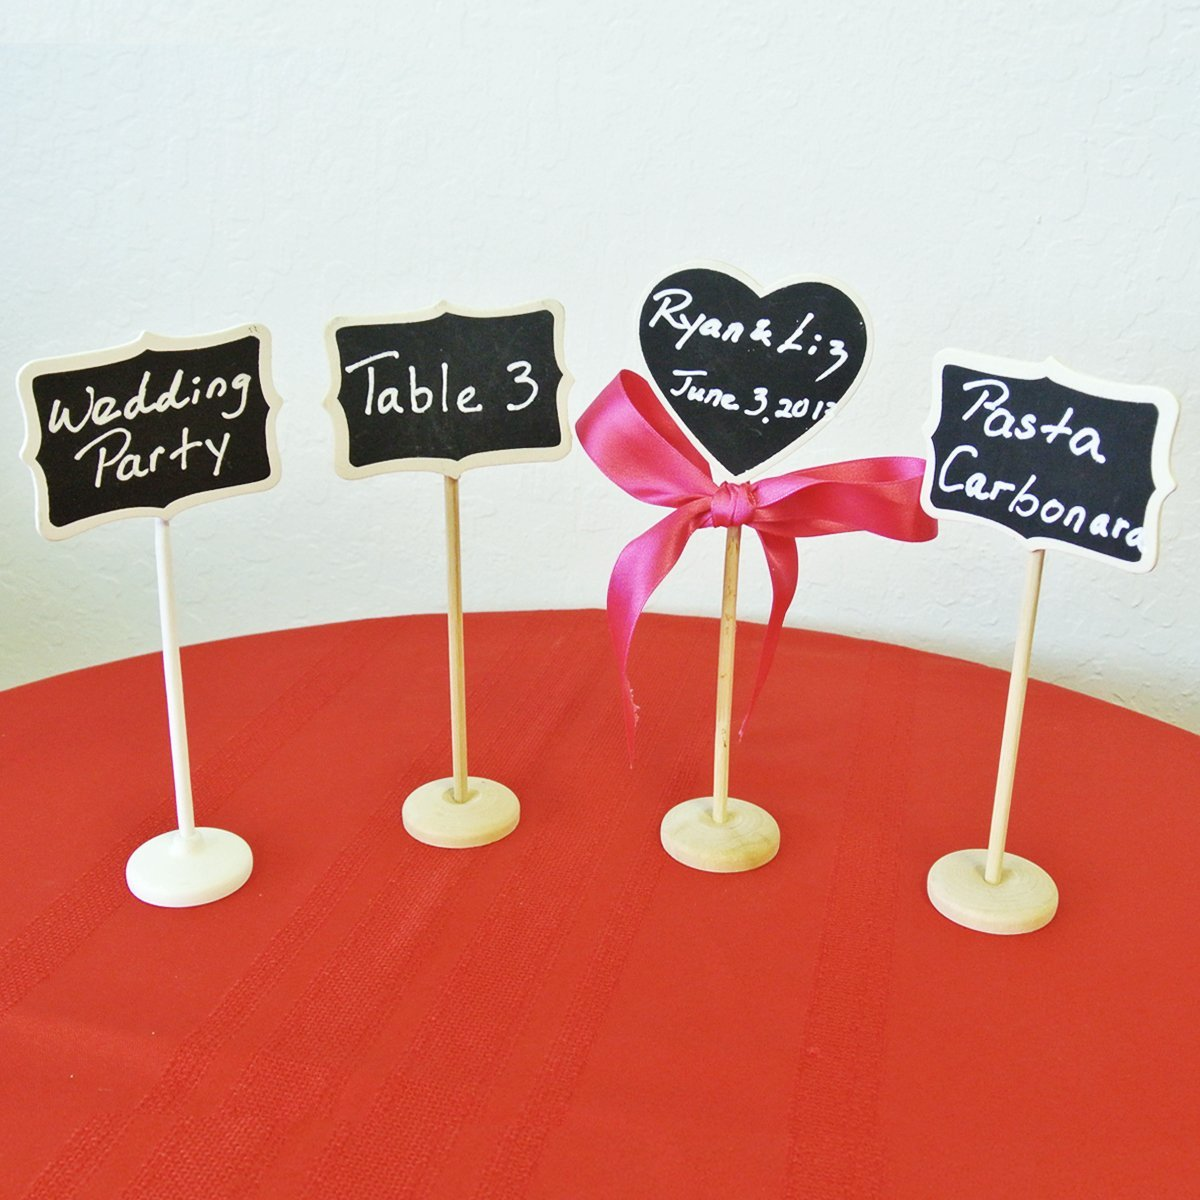 "Set of 8 Chalkboard Stands With Chalkboard Stickers, 3.25"" x 2.5"" Cloud"